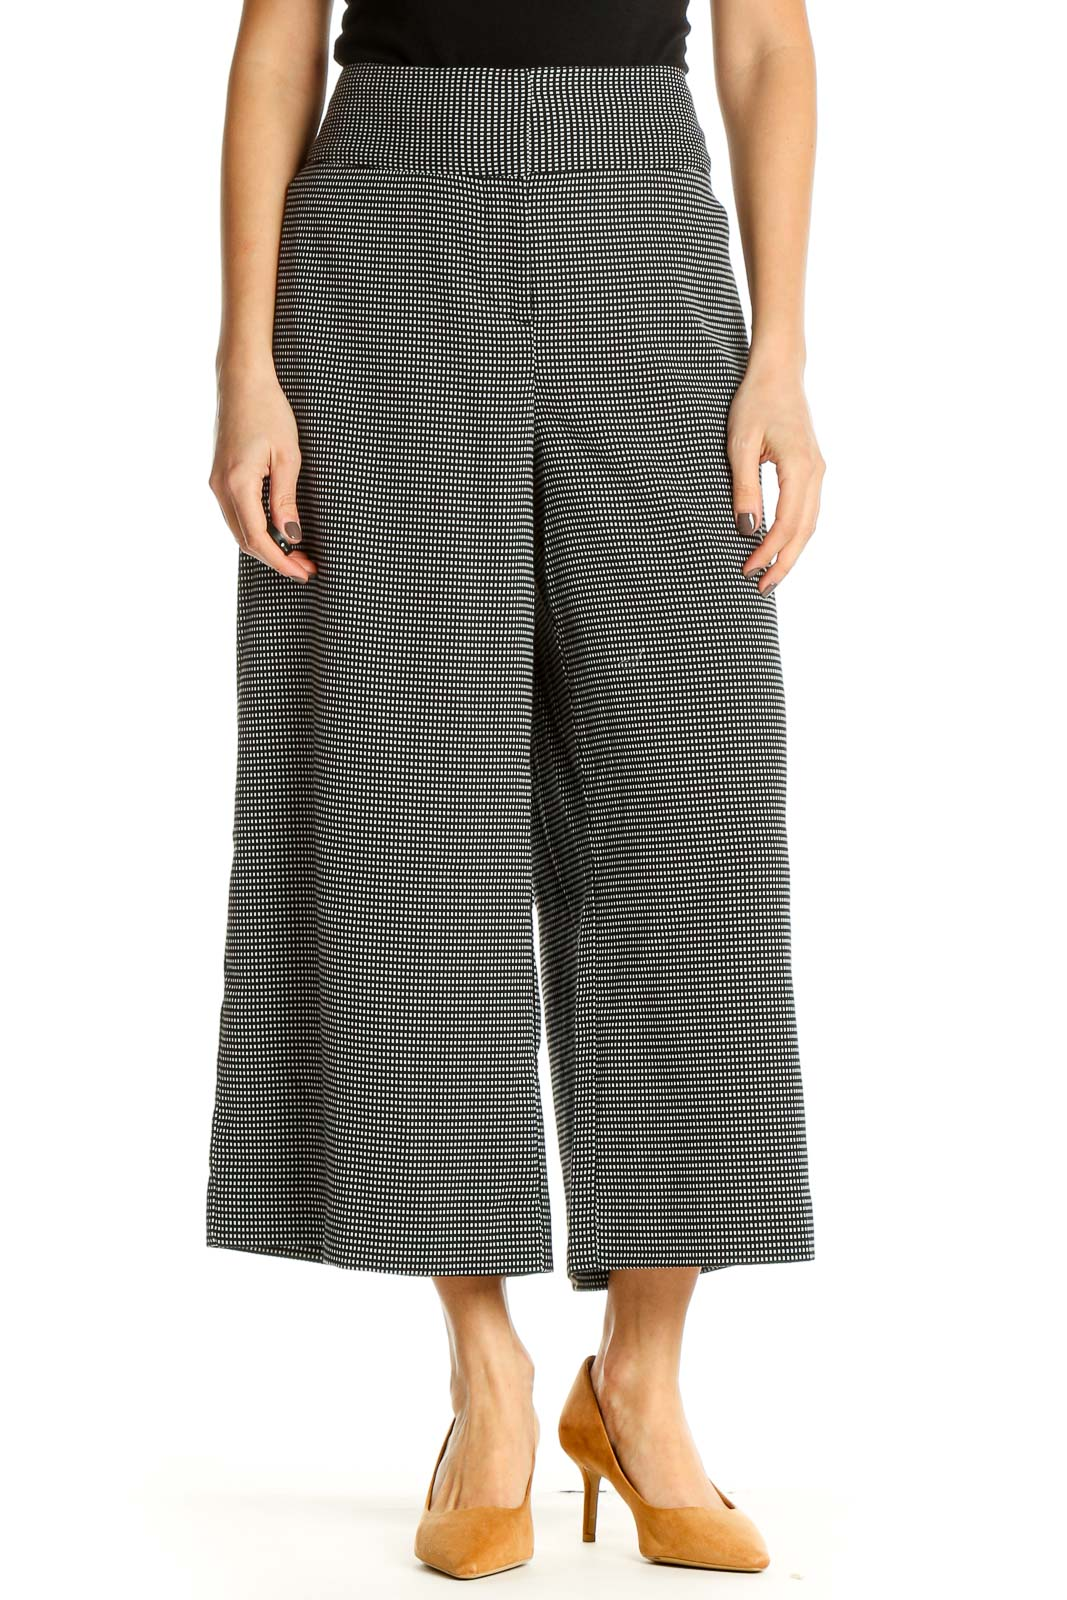 Gray Solid Bohemian Culottes Pants Front